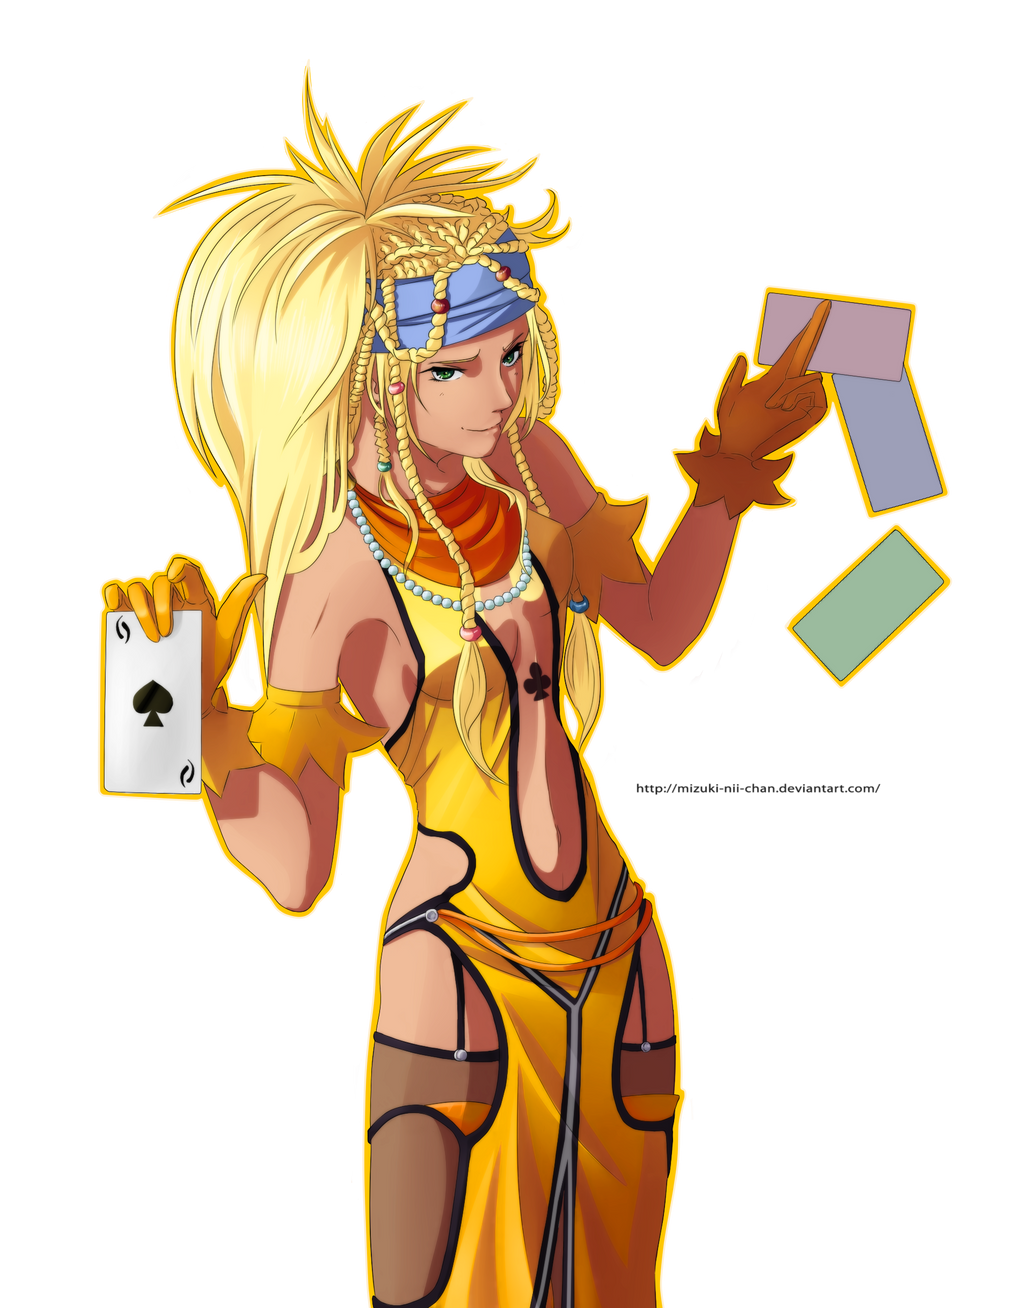 rikku and gippal relationship questions